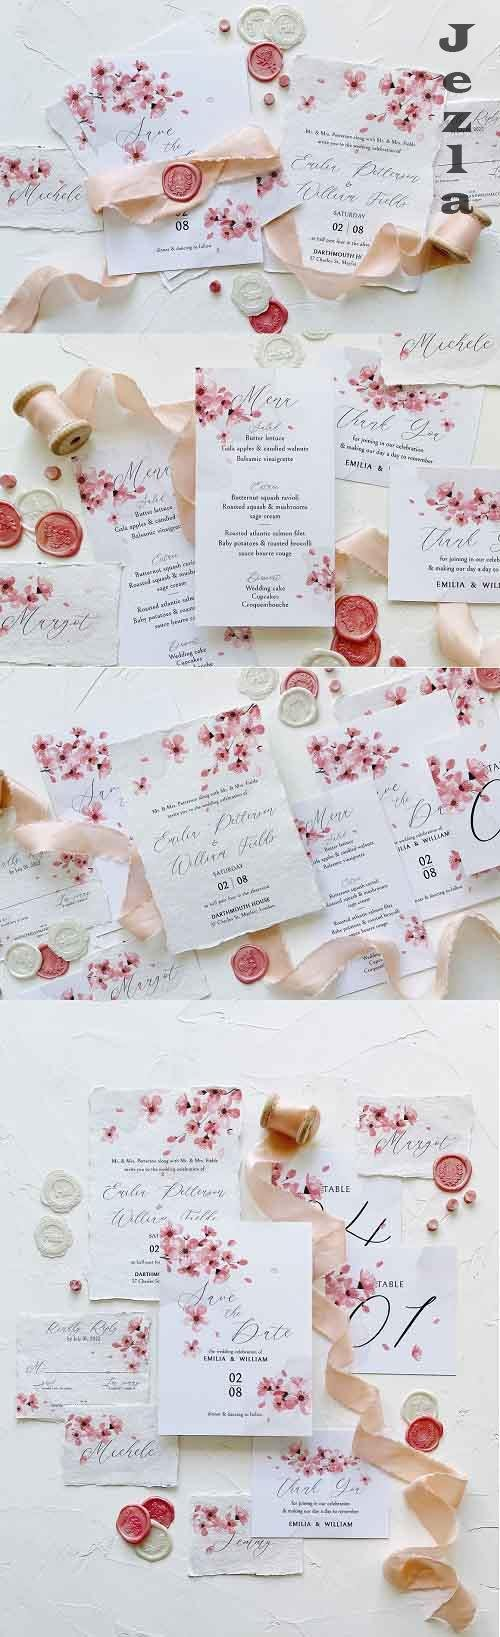 Pink Cherry Blossom Wedding Suite - 5831699